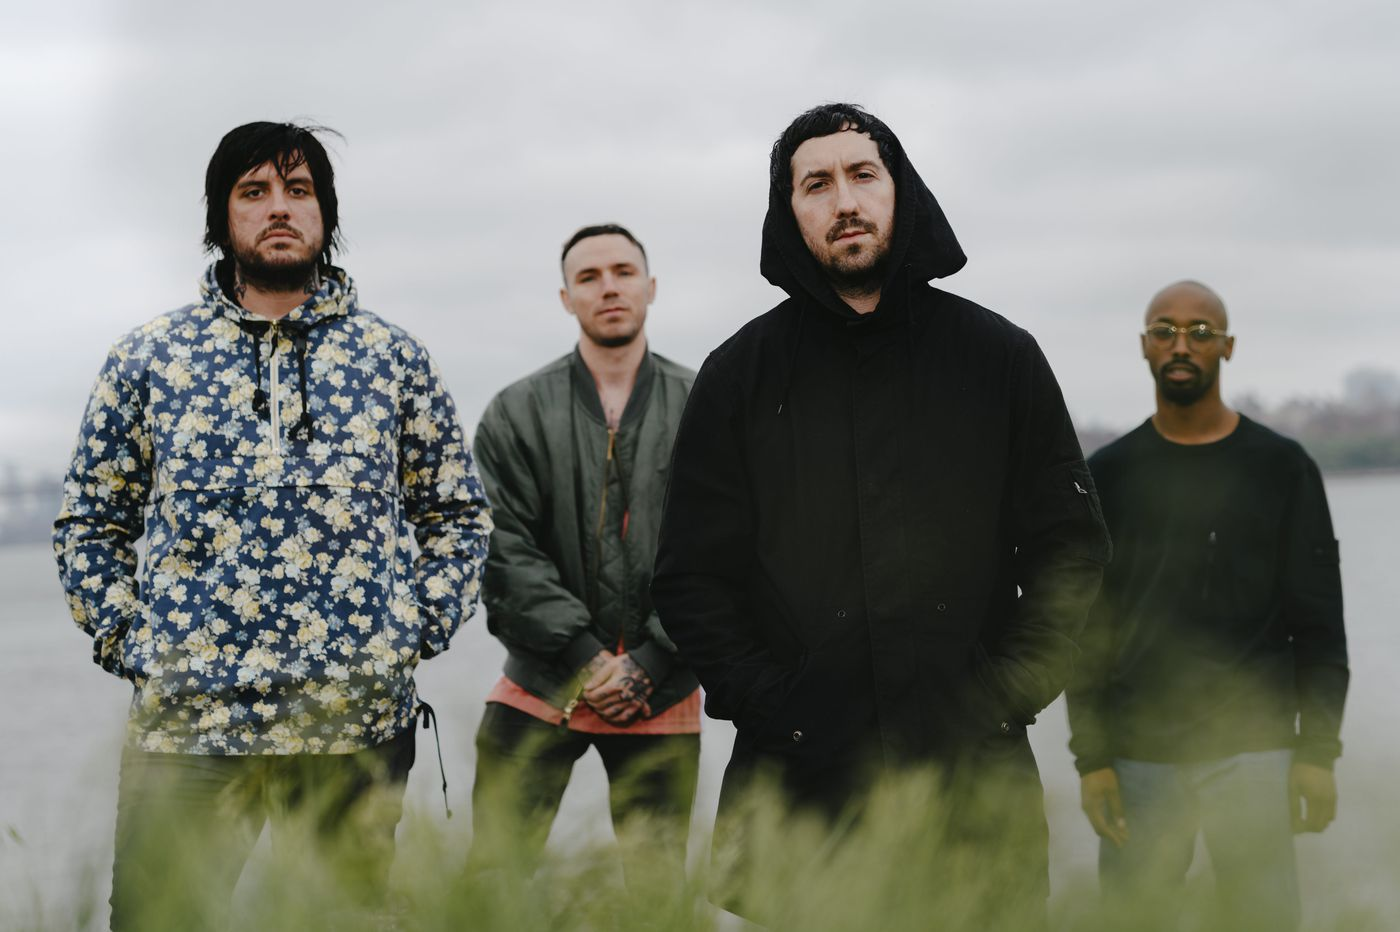 Philly band Nothing is doing something about the criminal justice system